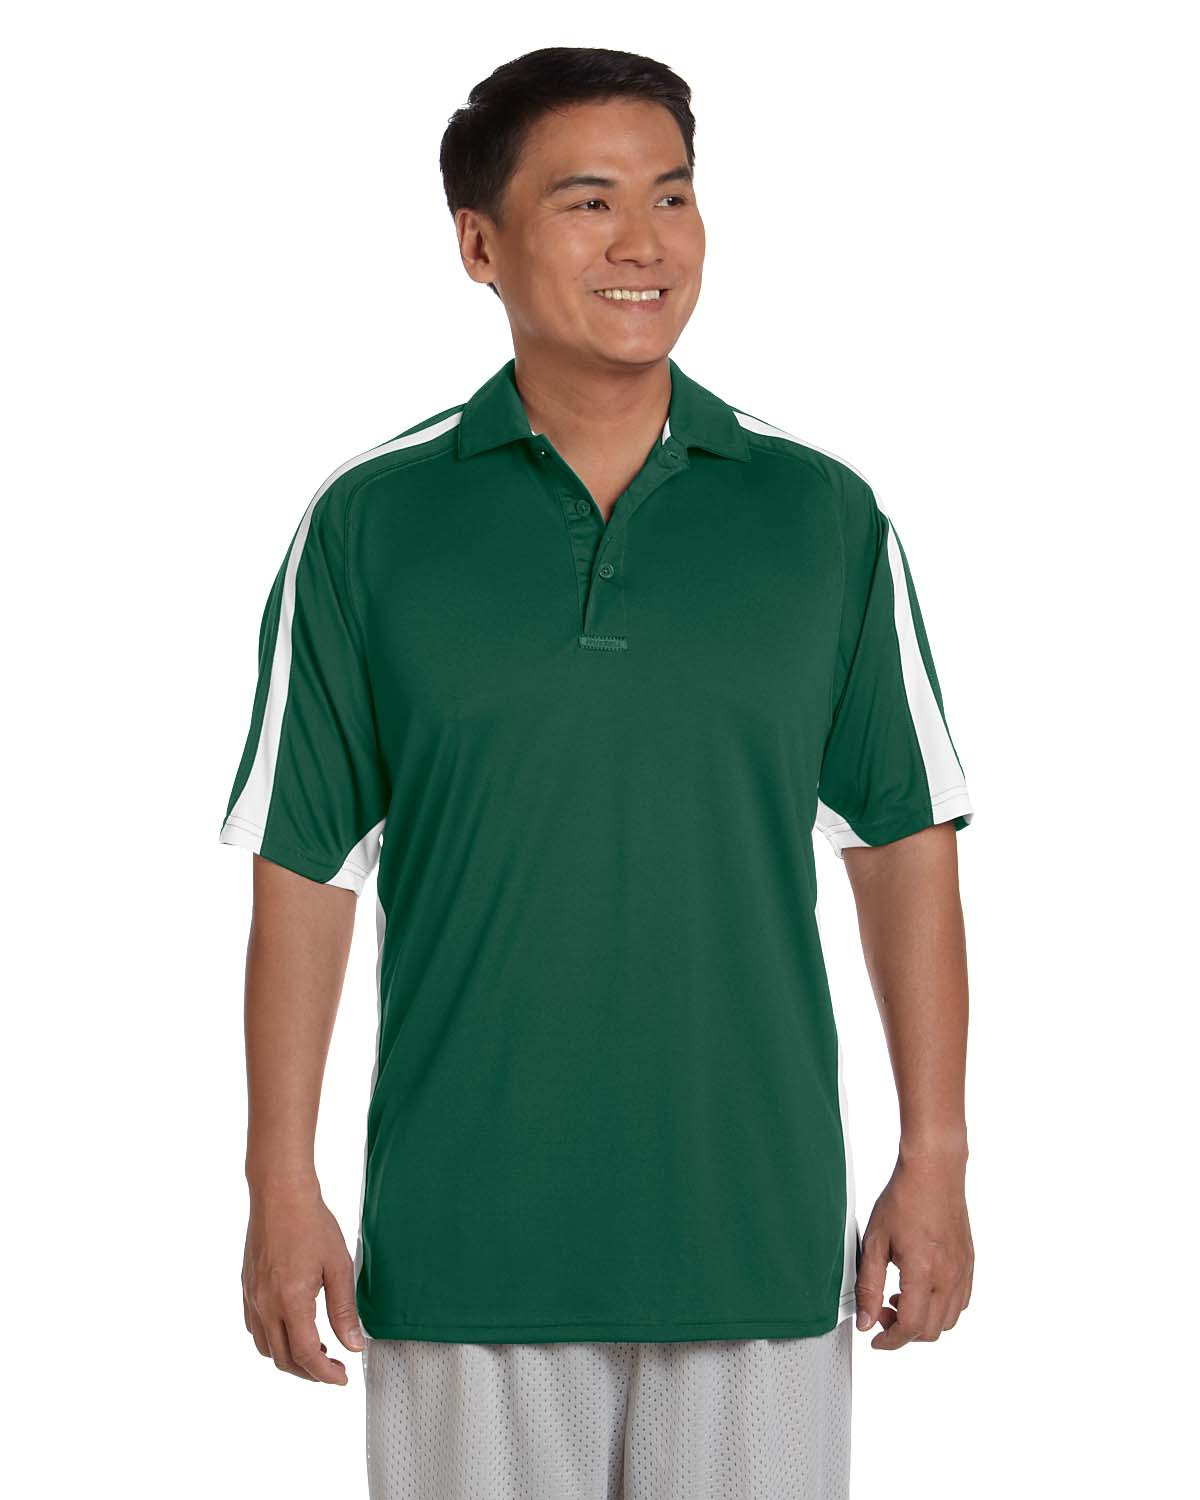 Russell Athletic S92CFM - Team Game Day Polo